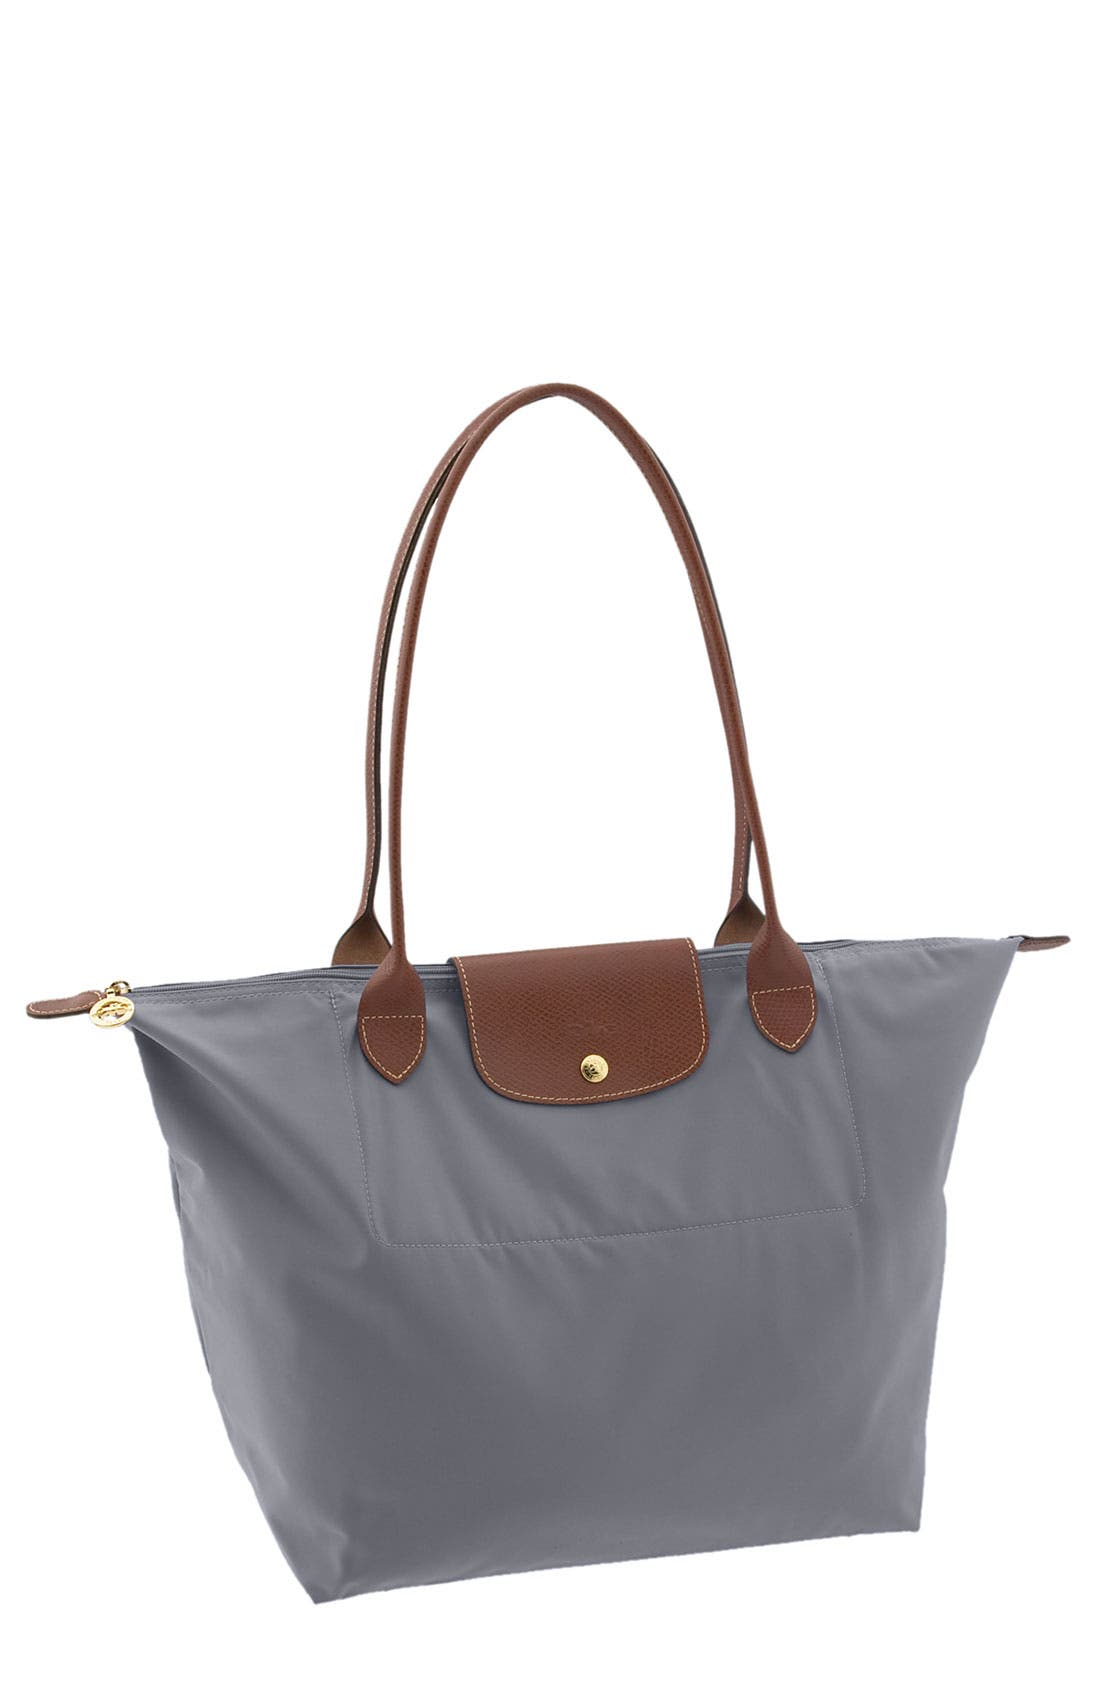 LONGCHAMP, 'Le Pliage - Large' Tote Bag, Main thumbnail 1, color, 020